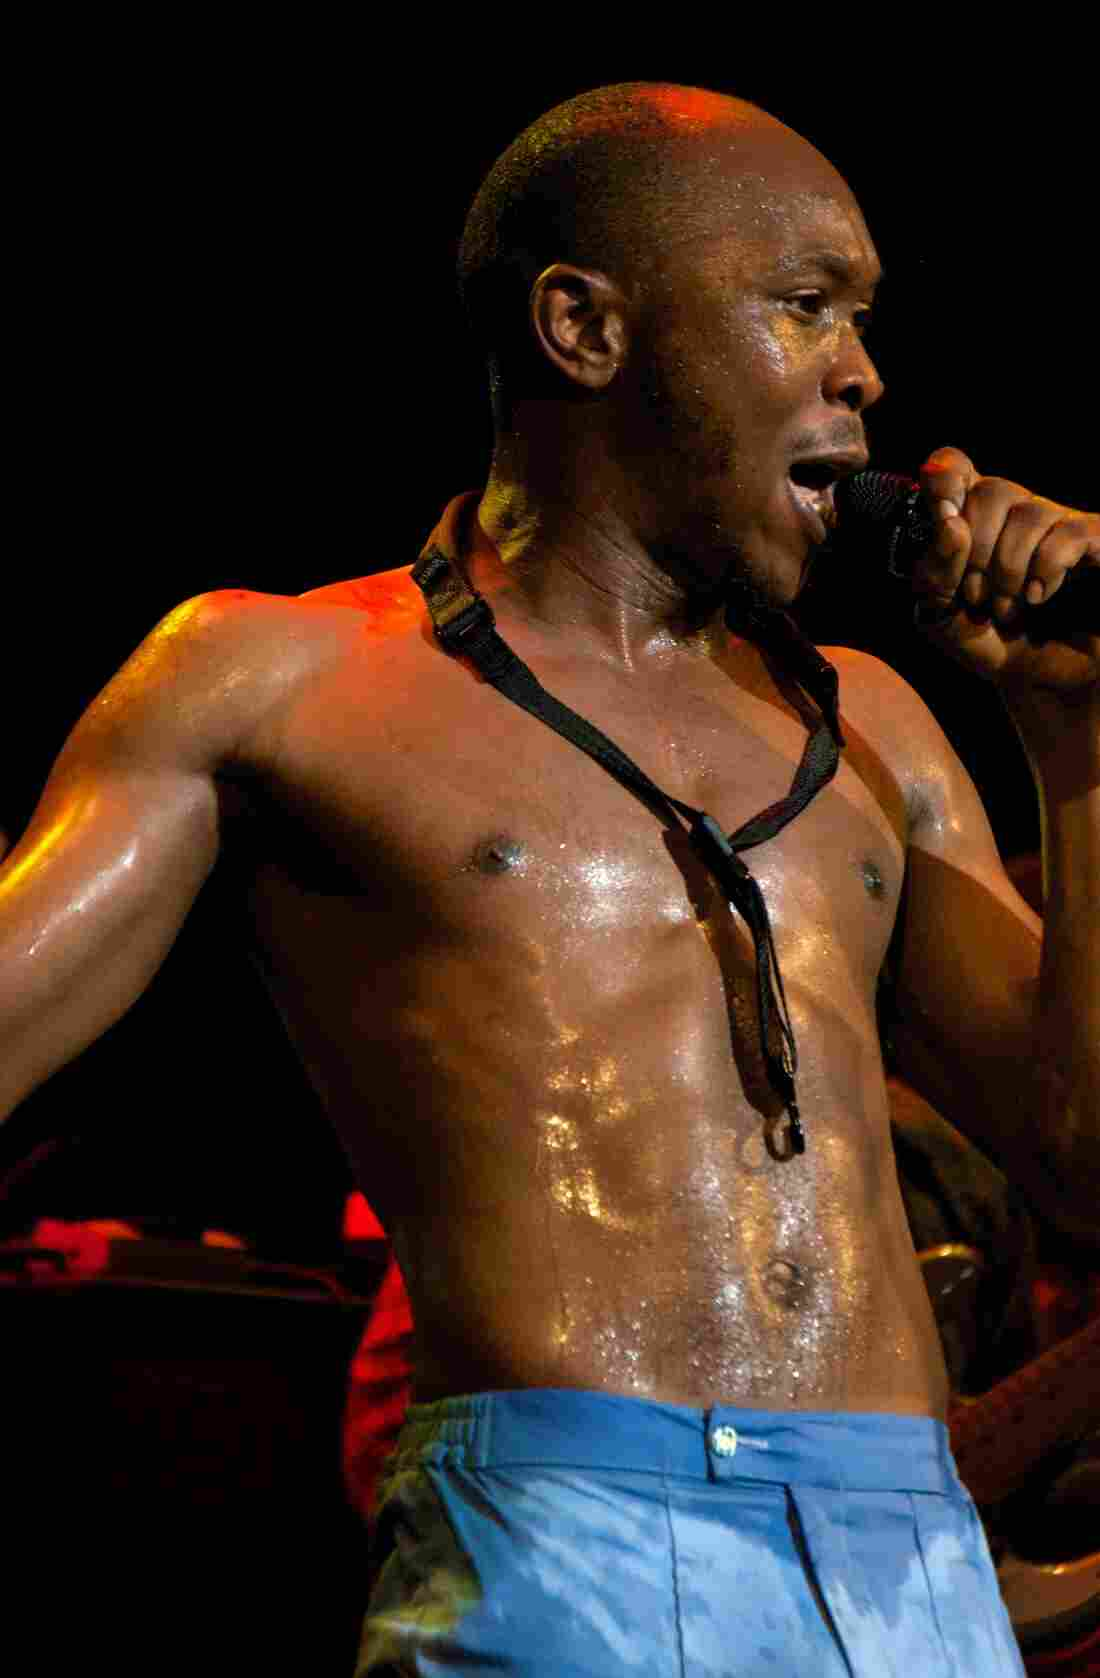 Seun Kuti Howard Theatre Washington, D.C. Photo by Bob Boilen for NPR Music